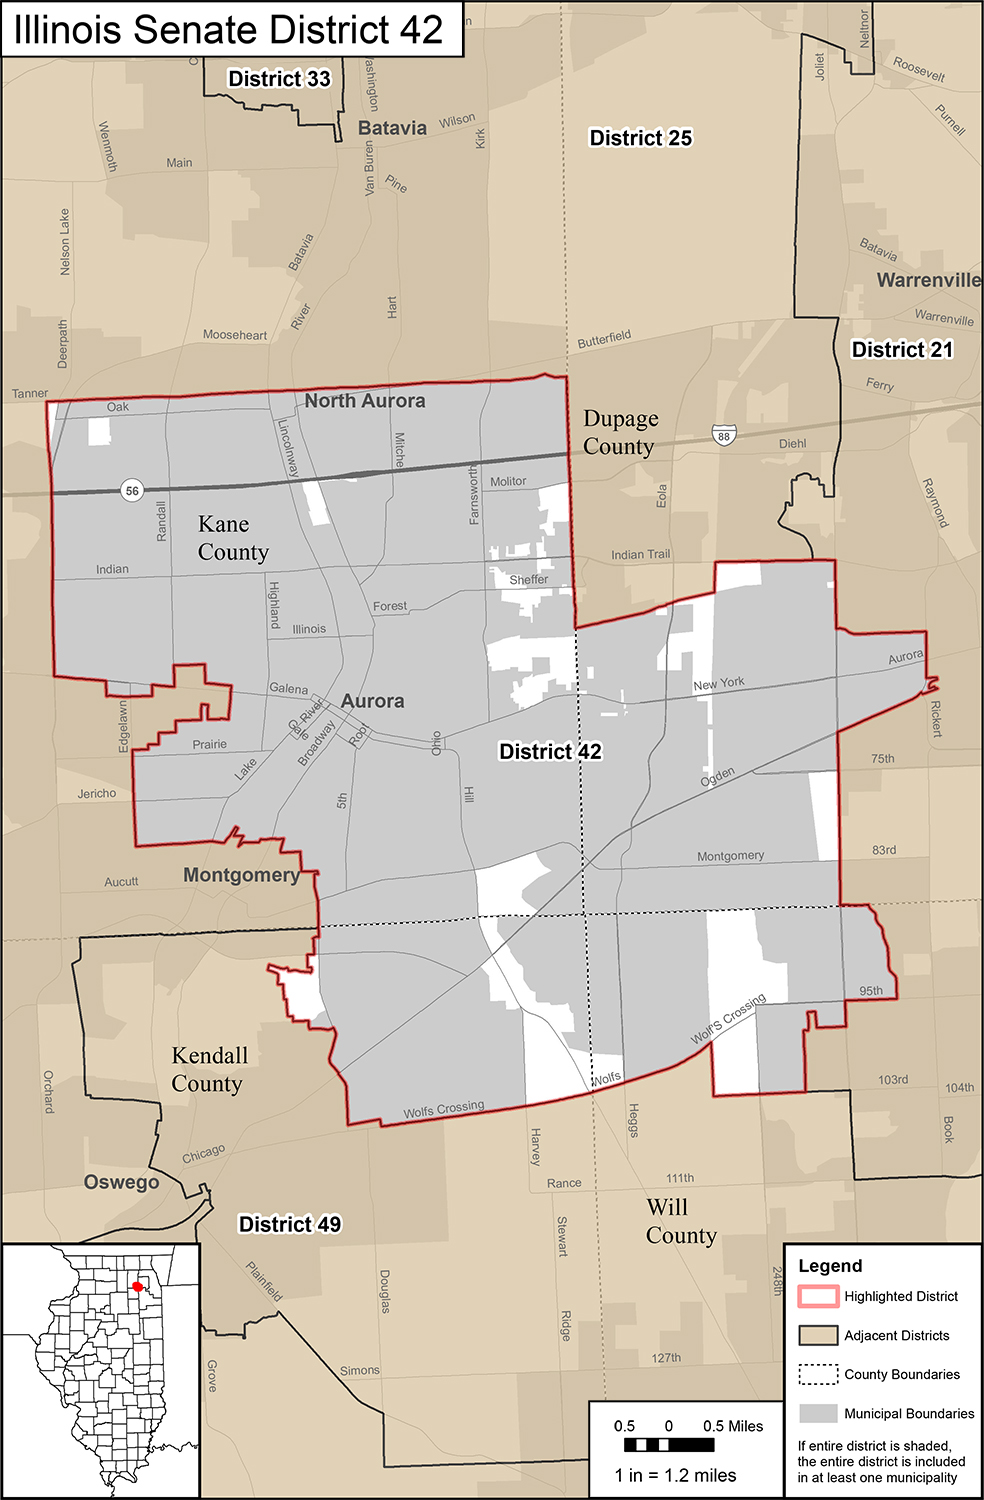 42nd Senate District